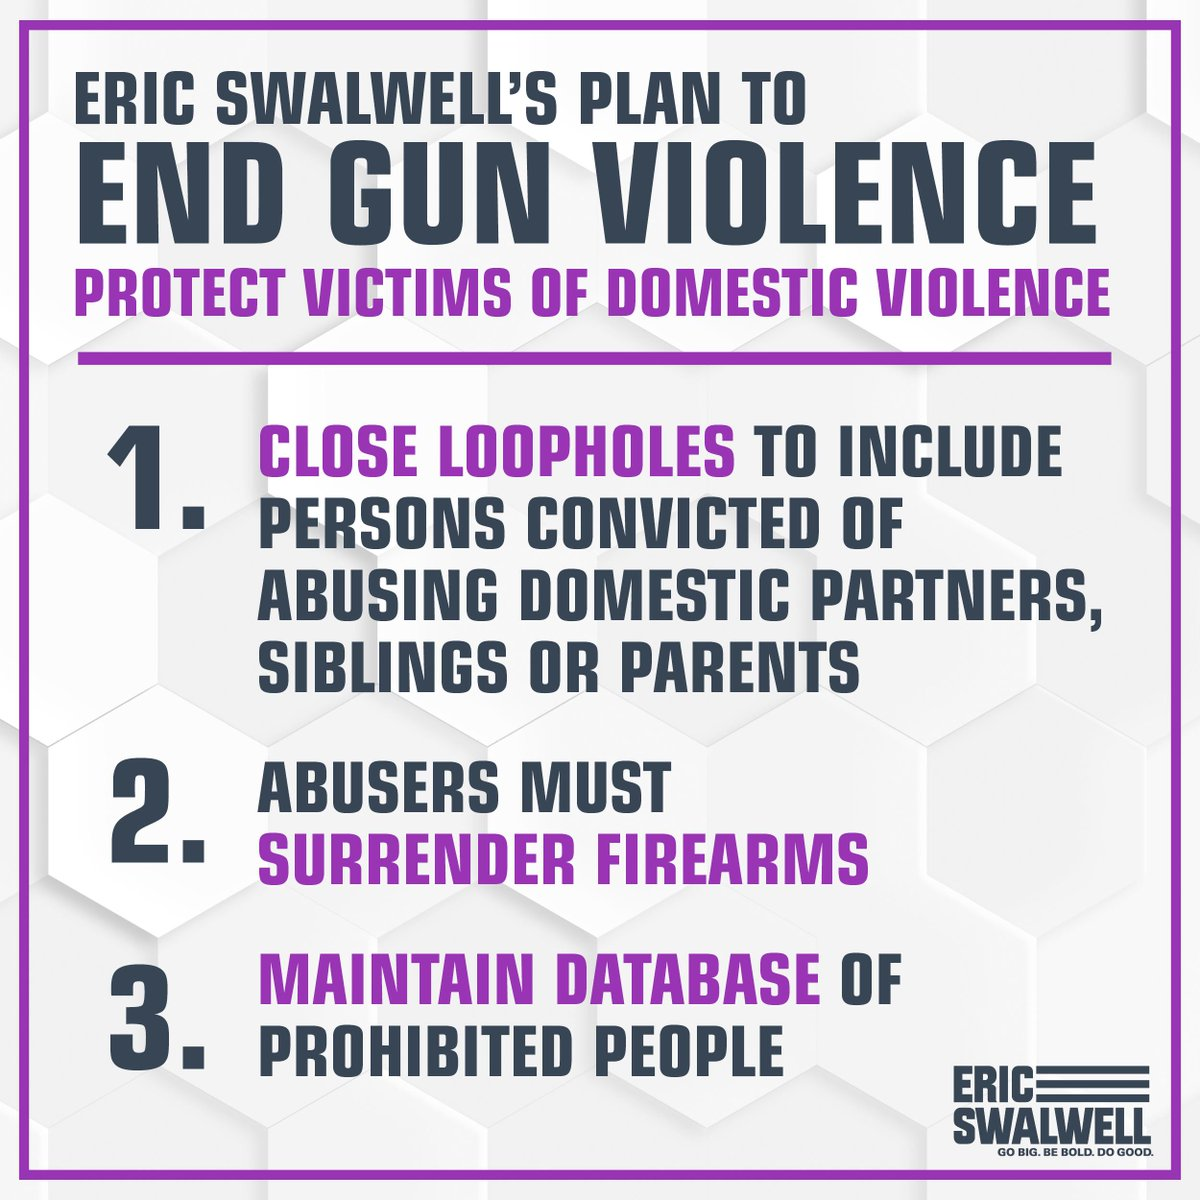 We cannot allow domestic abusers to carry firearms.  For more on our comprehensive plan to end gun violence, go to http://ericswalwell.com/endgunviolence